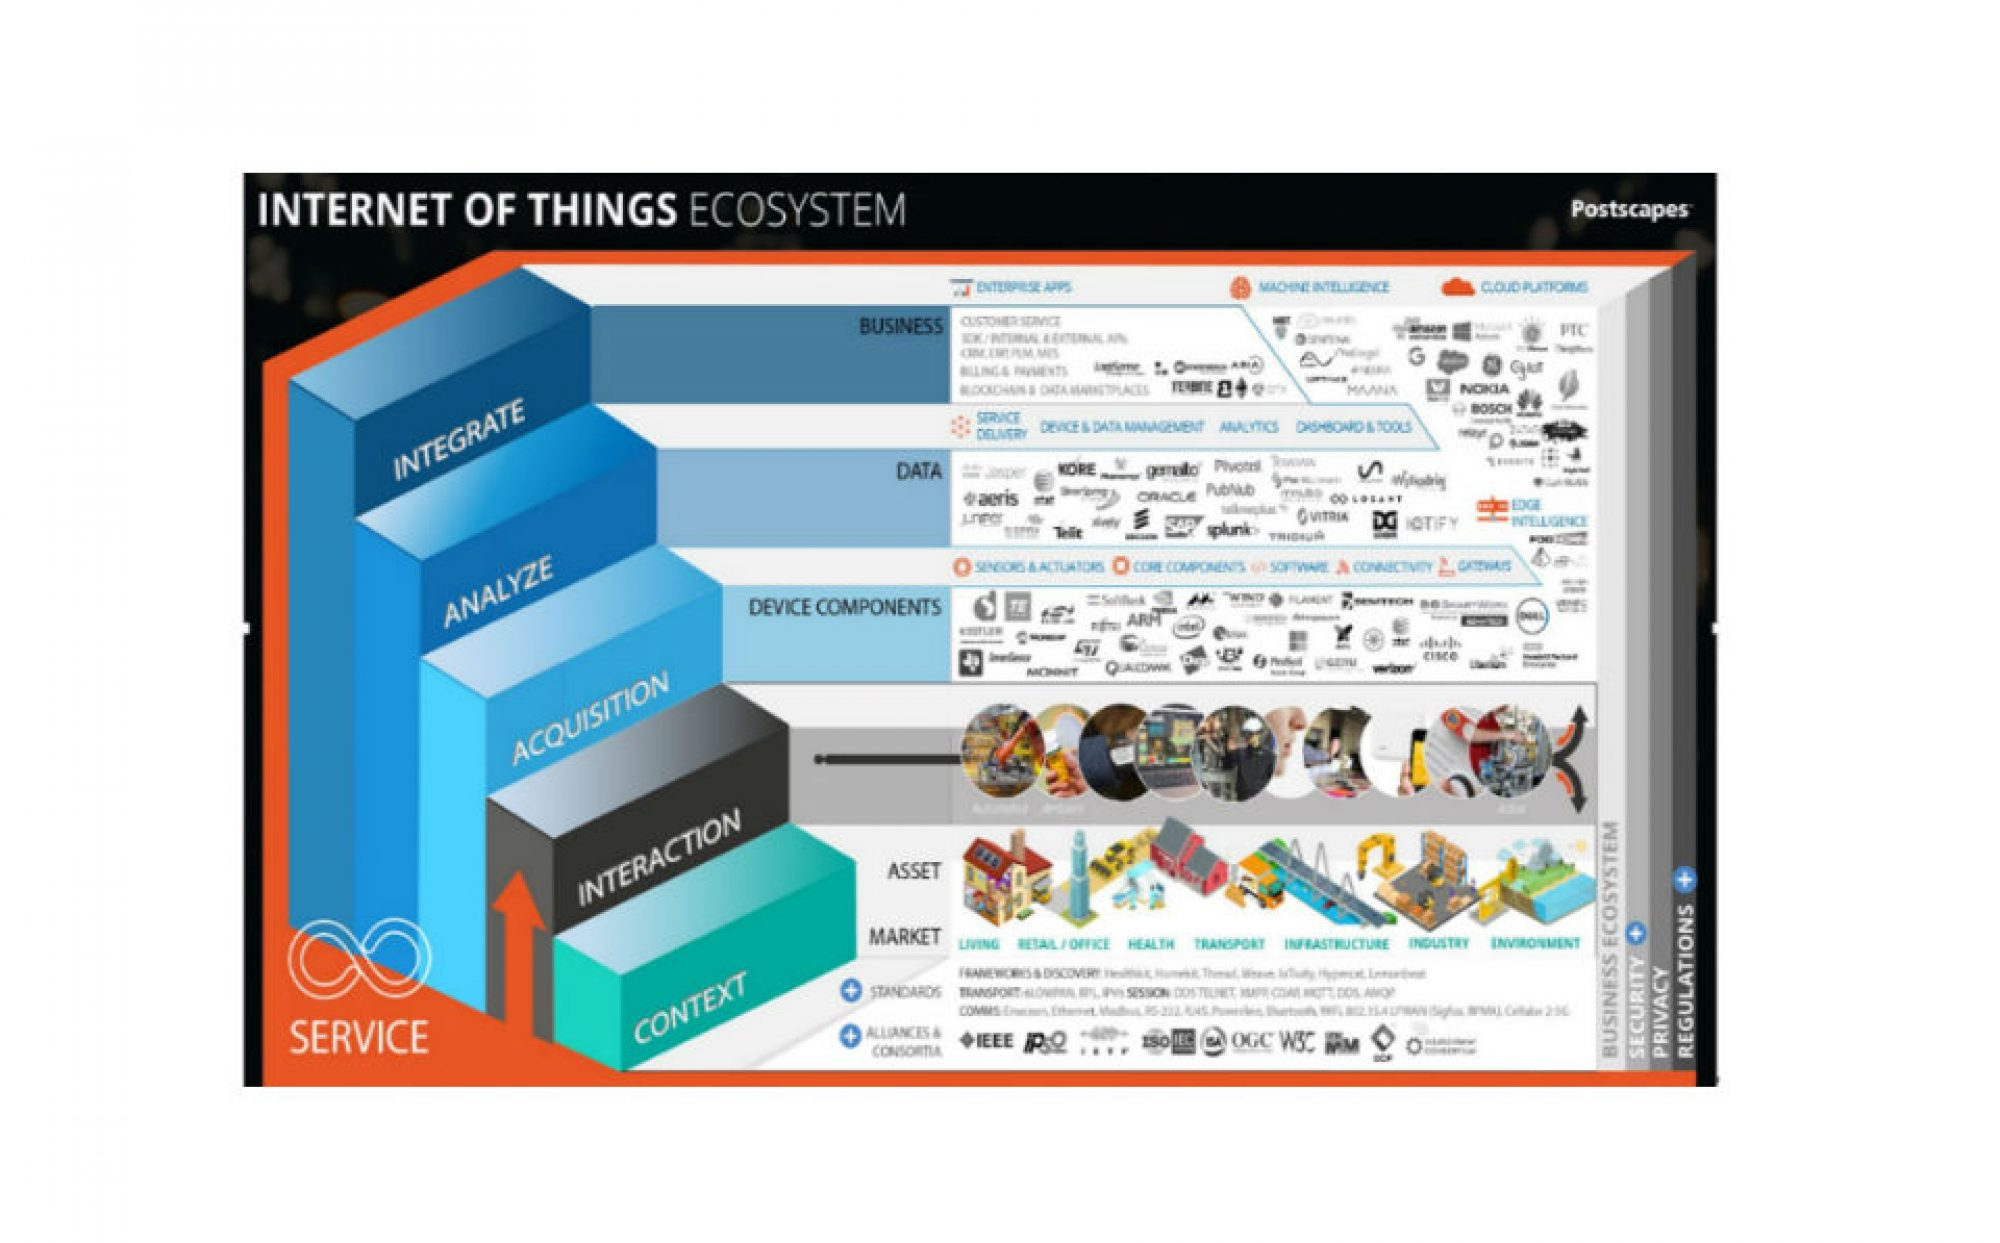 Conceptual Modeling and Simulation of Internet of Things Ecosystems